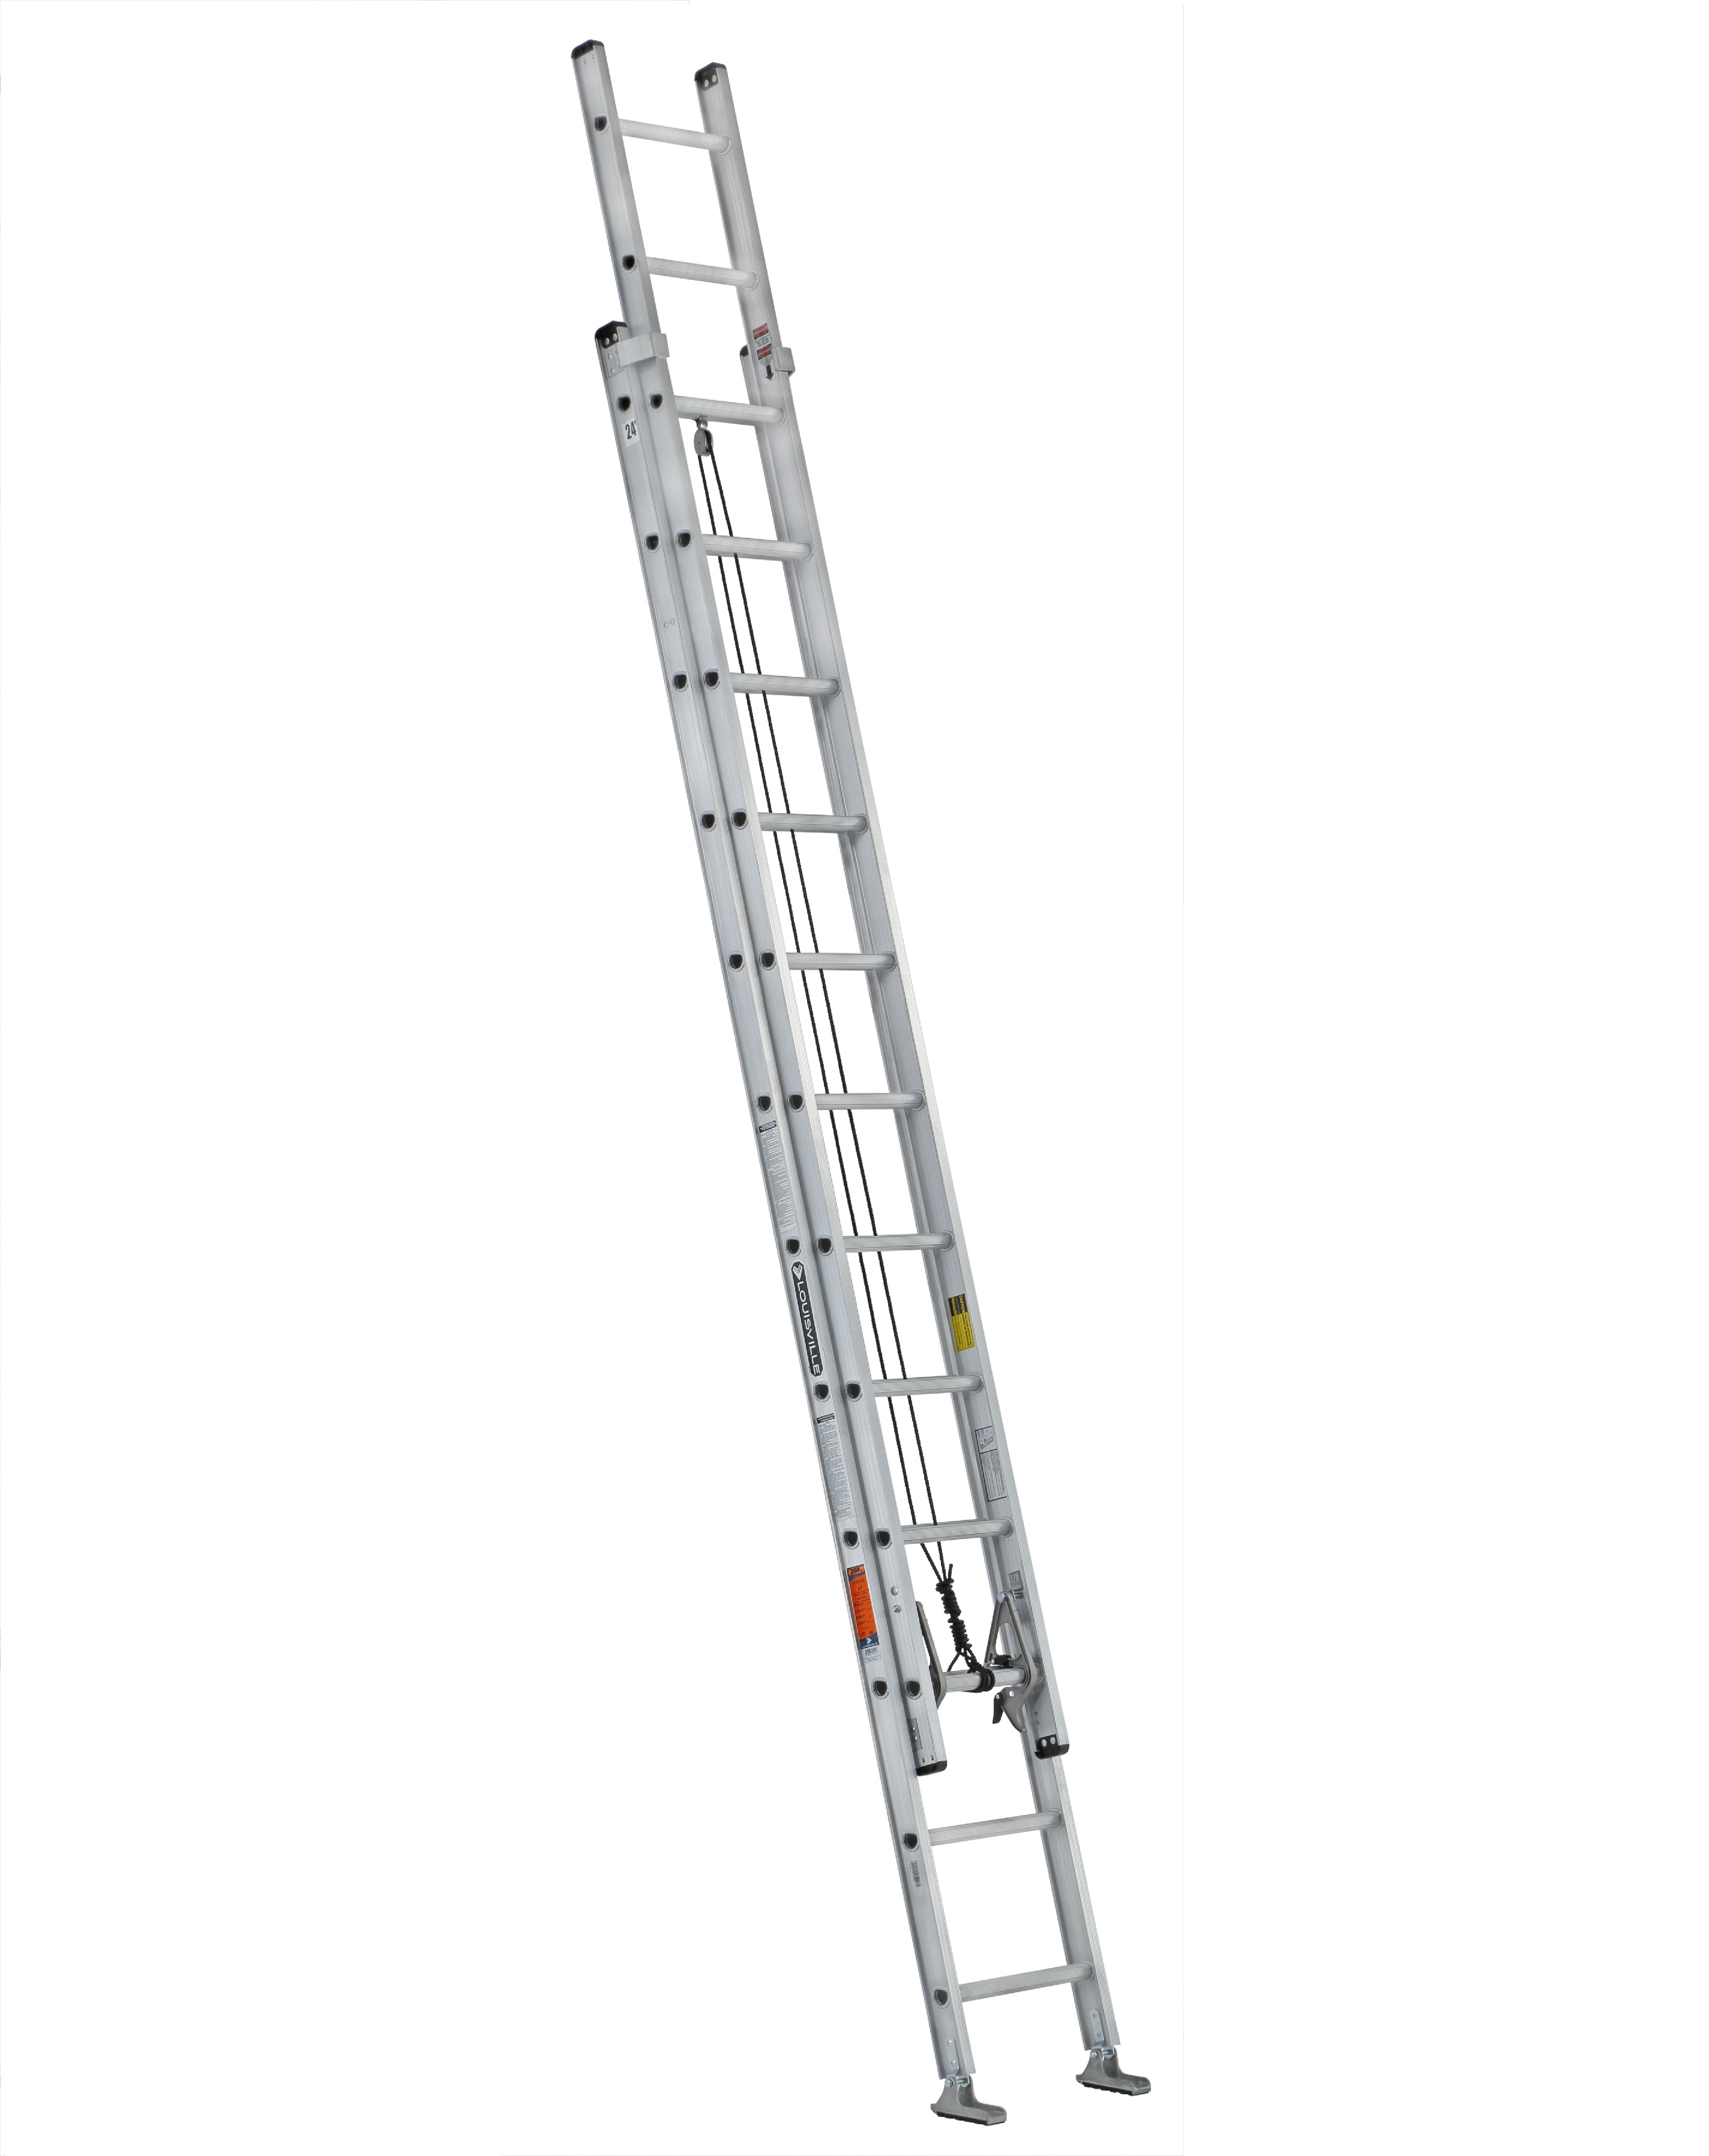 Louisville Ladder AE2224 300 lb Capacity 24 Foot Aluminum Extension Ladder